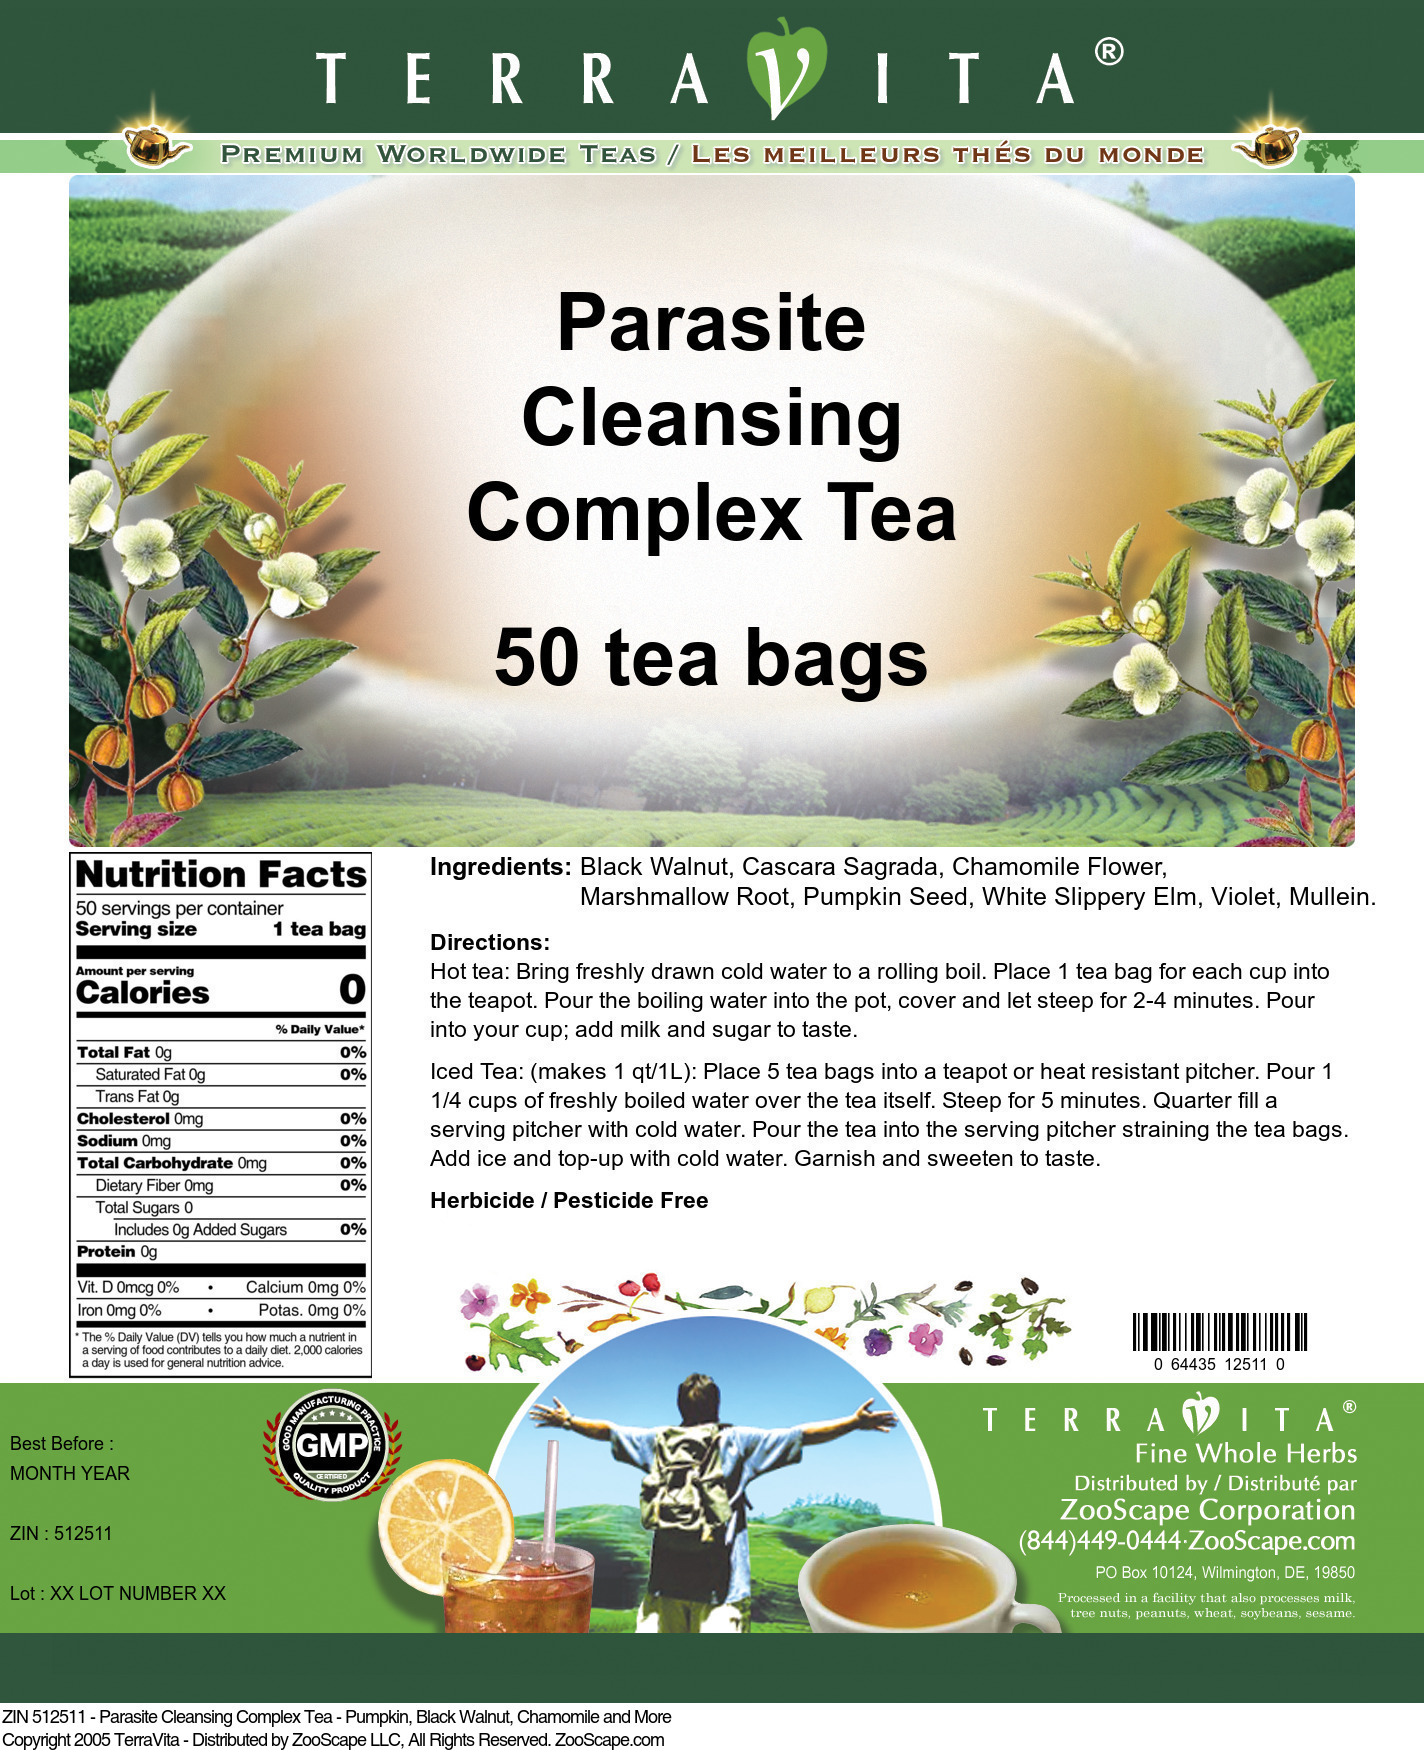 Parasite Cleansing Complex Tea - Pumpkin, Black Walnut, Chamomile and More